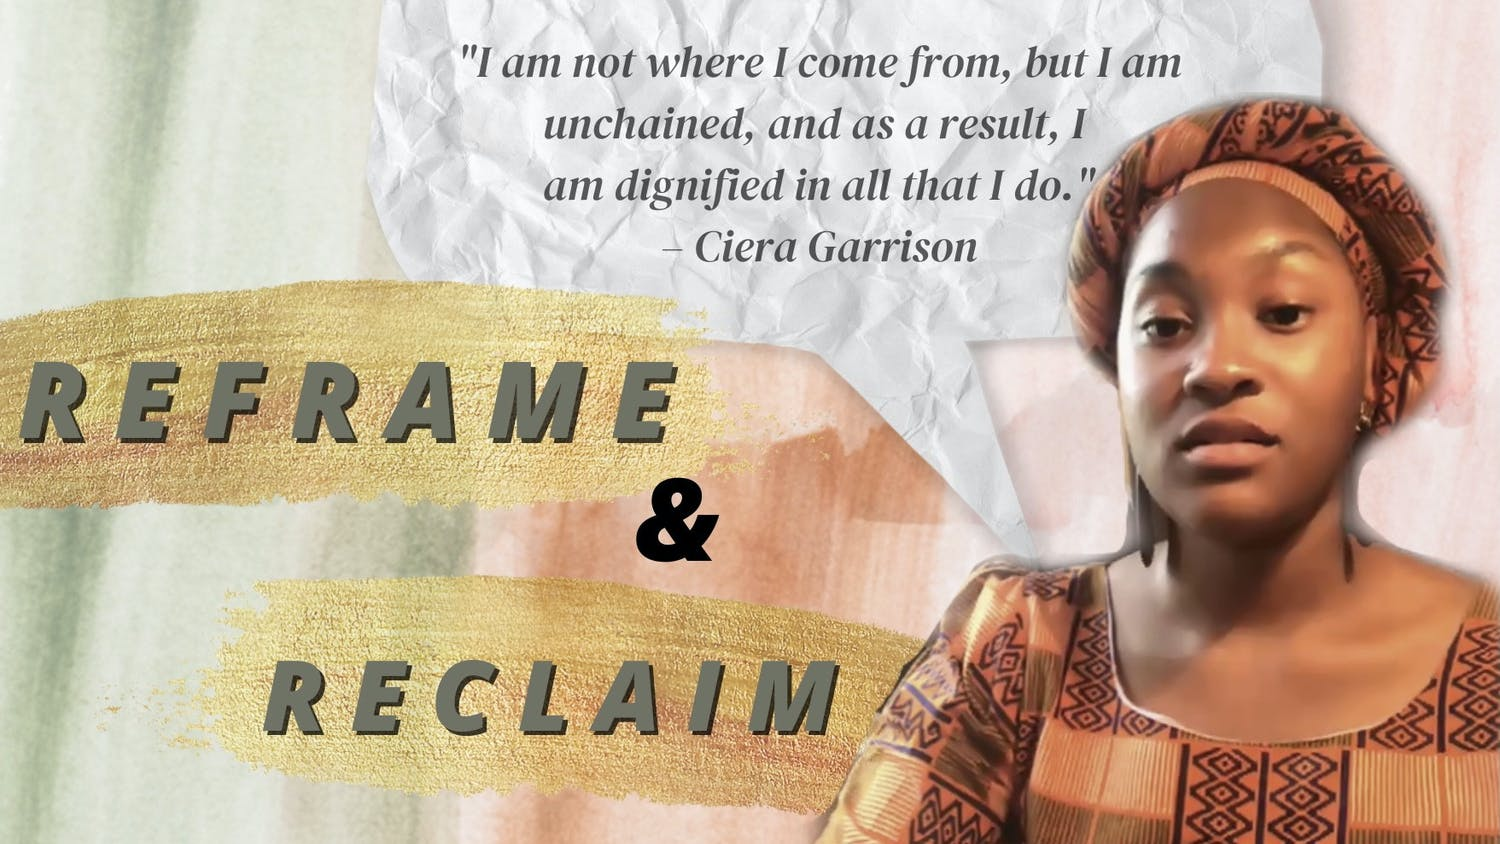 """Ciera Garrison, a 23-year-old fourth-year sociology major at UF, was a guest speaker at the virtual """"Reframe and Reclaim"""" event Wednesday. She read her piece """"Unchained"""" at the event, which represents the art of being free from """"past trauma,"""" """"toxic exposure"""" and """"mental bondage."""""""